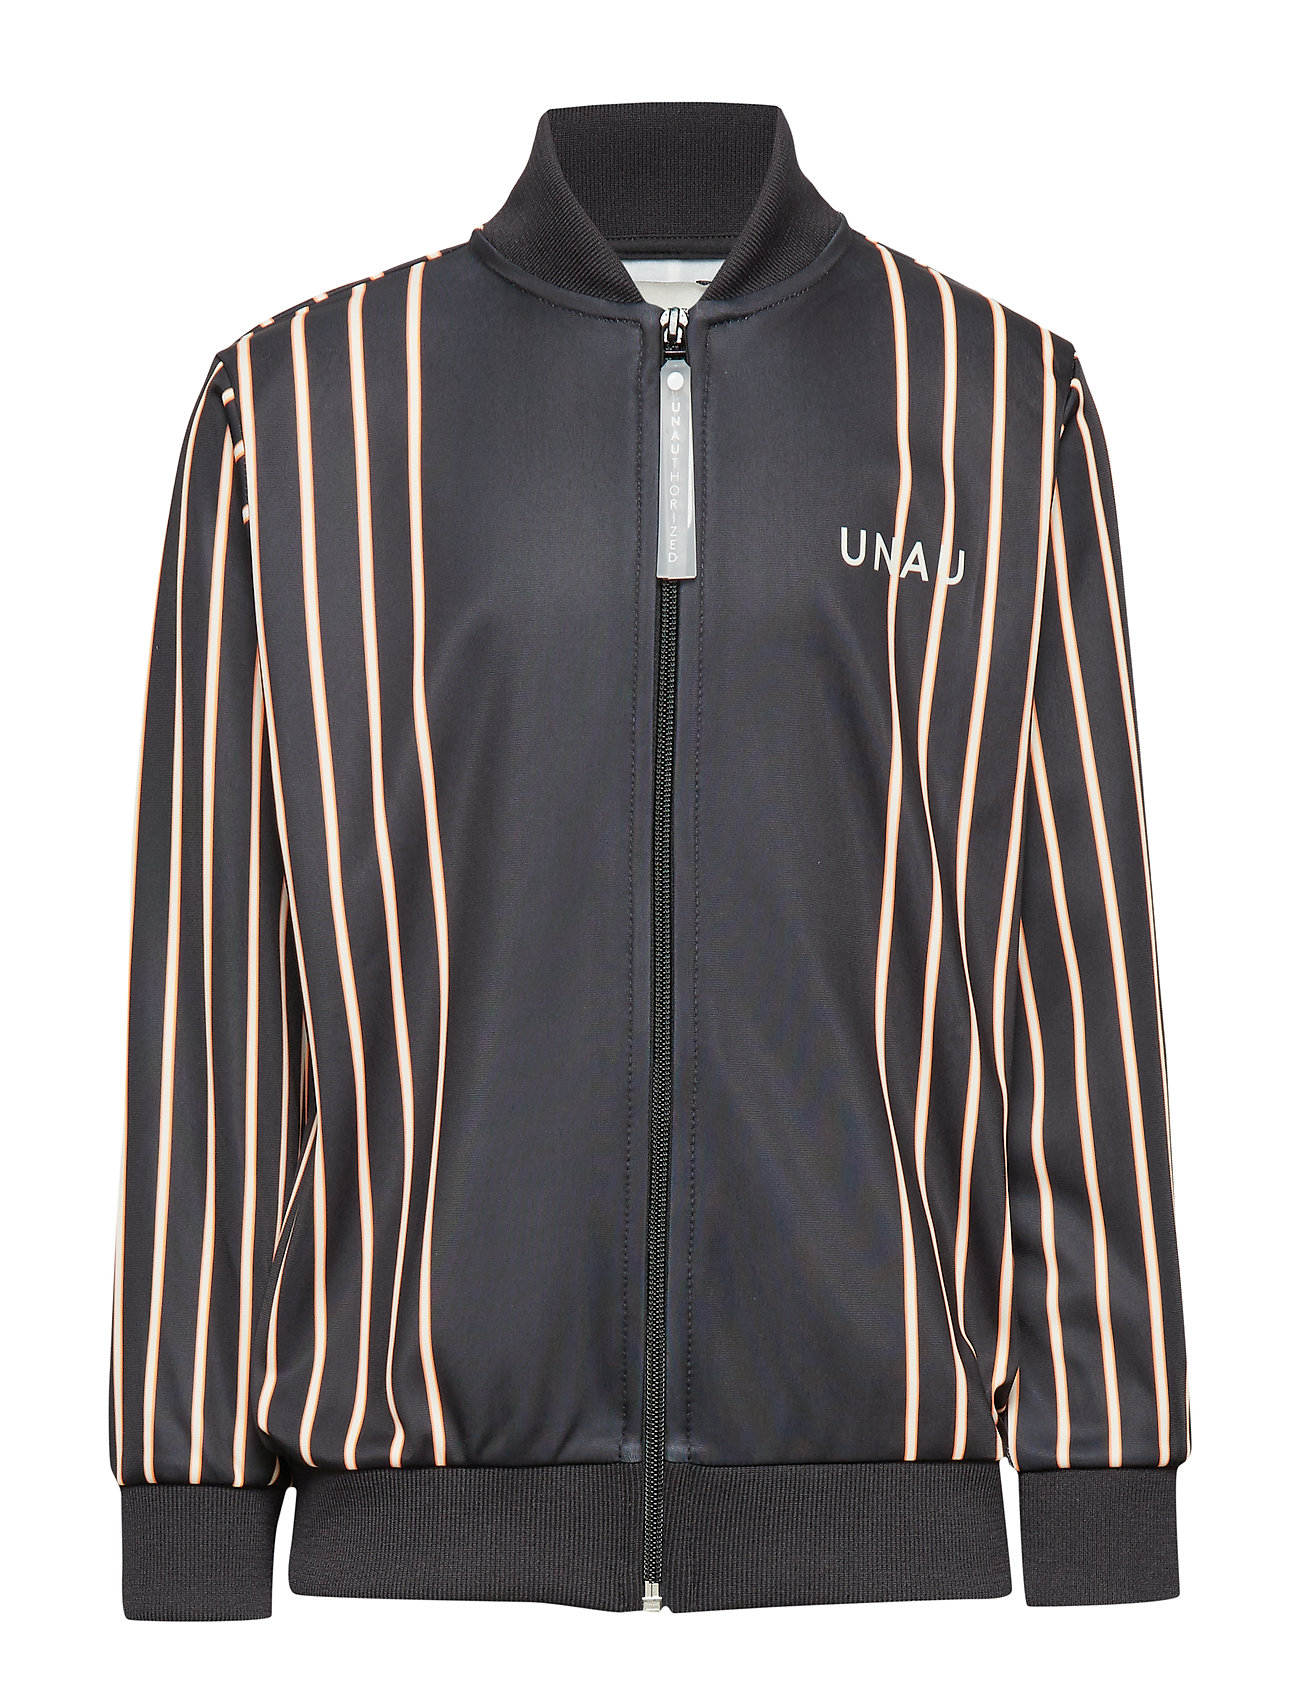 Unauthorized Josef Track Jacket, K - ANTHRACIT BLACK